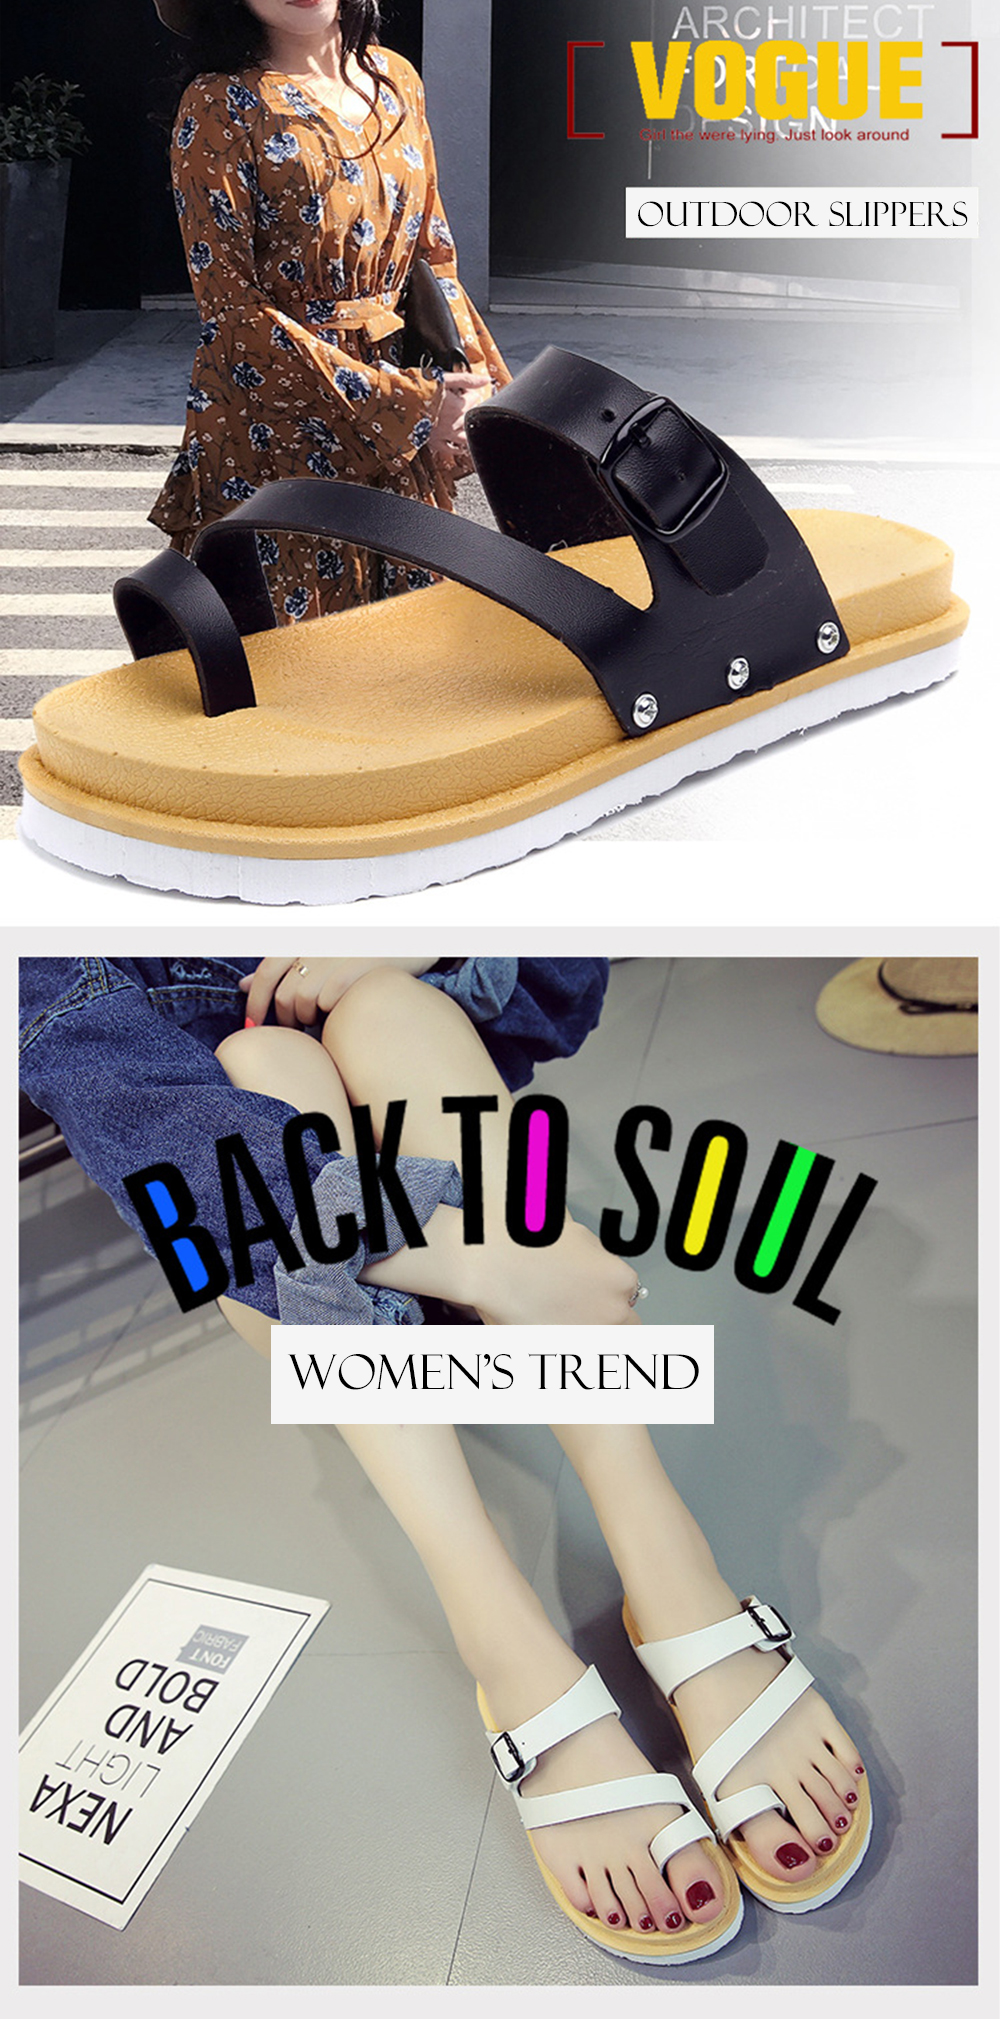 Shoes Persevering Mens Flip-flops Summer Non-slip Outdoor Sandals 2019 Summer Soft Slippers Feet Casual Outdoor Beach Slippers Size 39-45 Factory Direct Selling Price